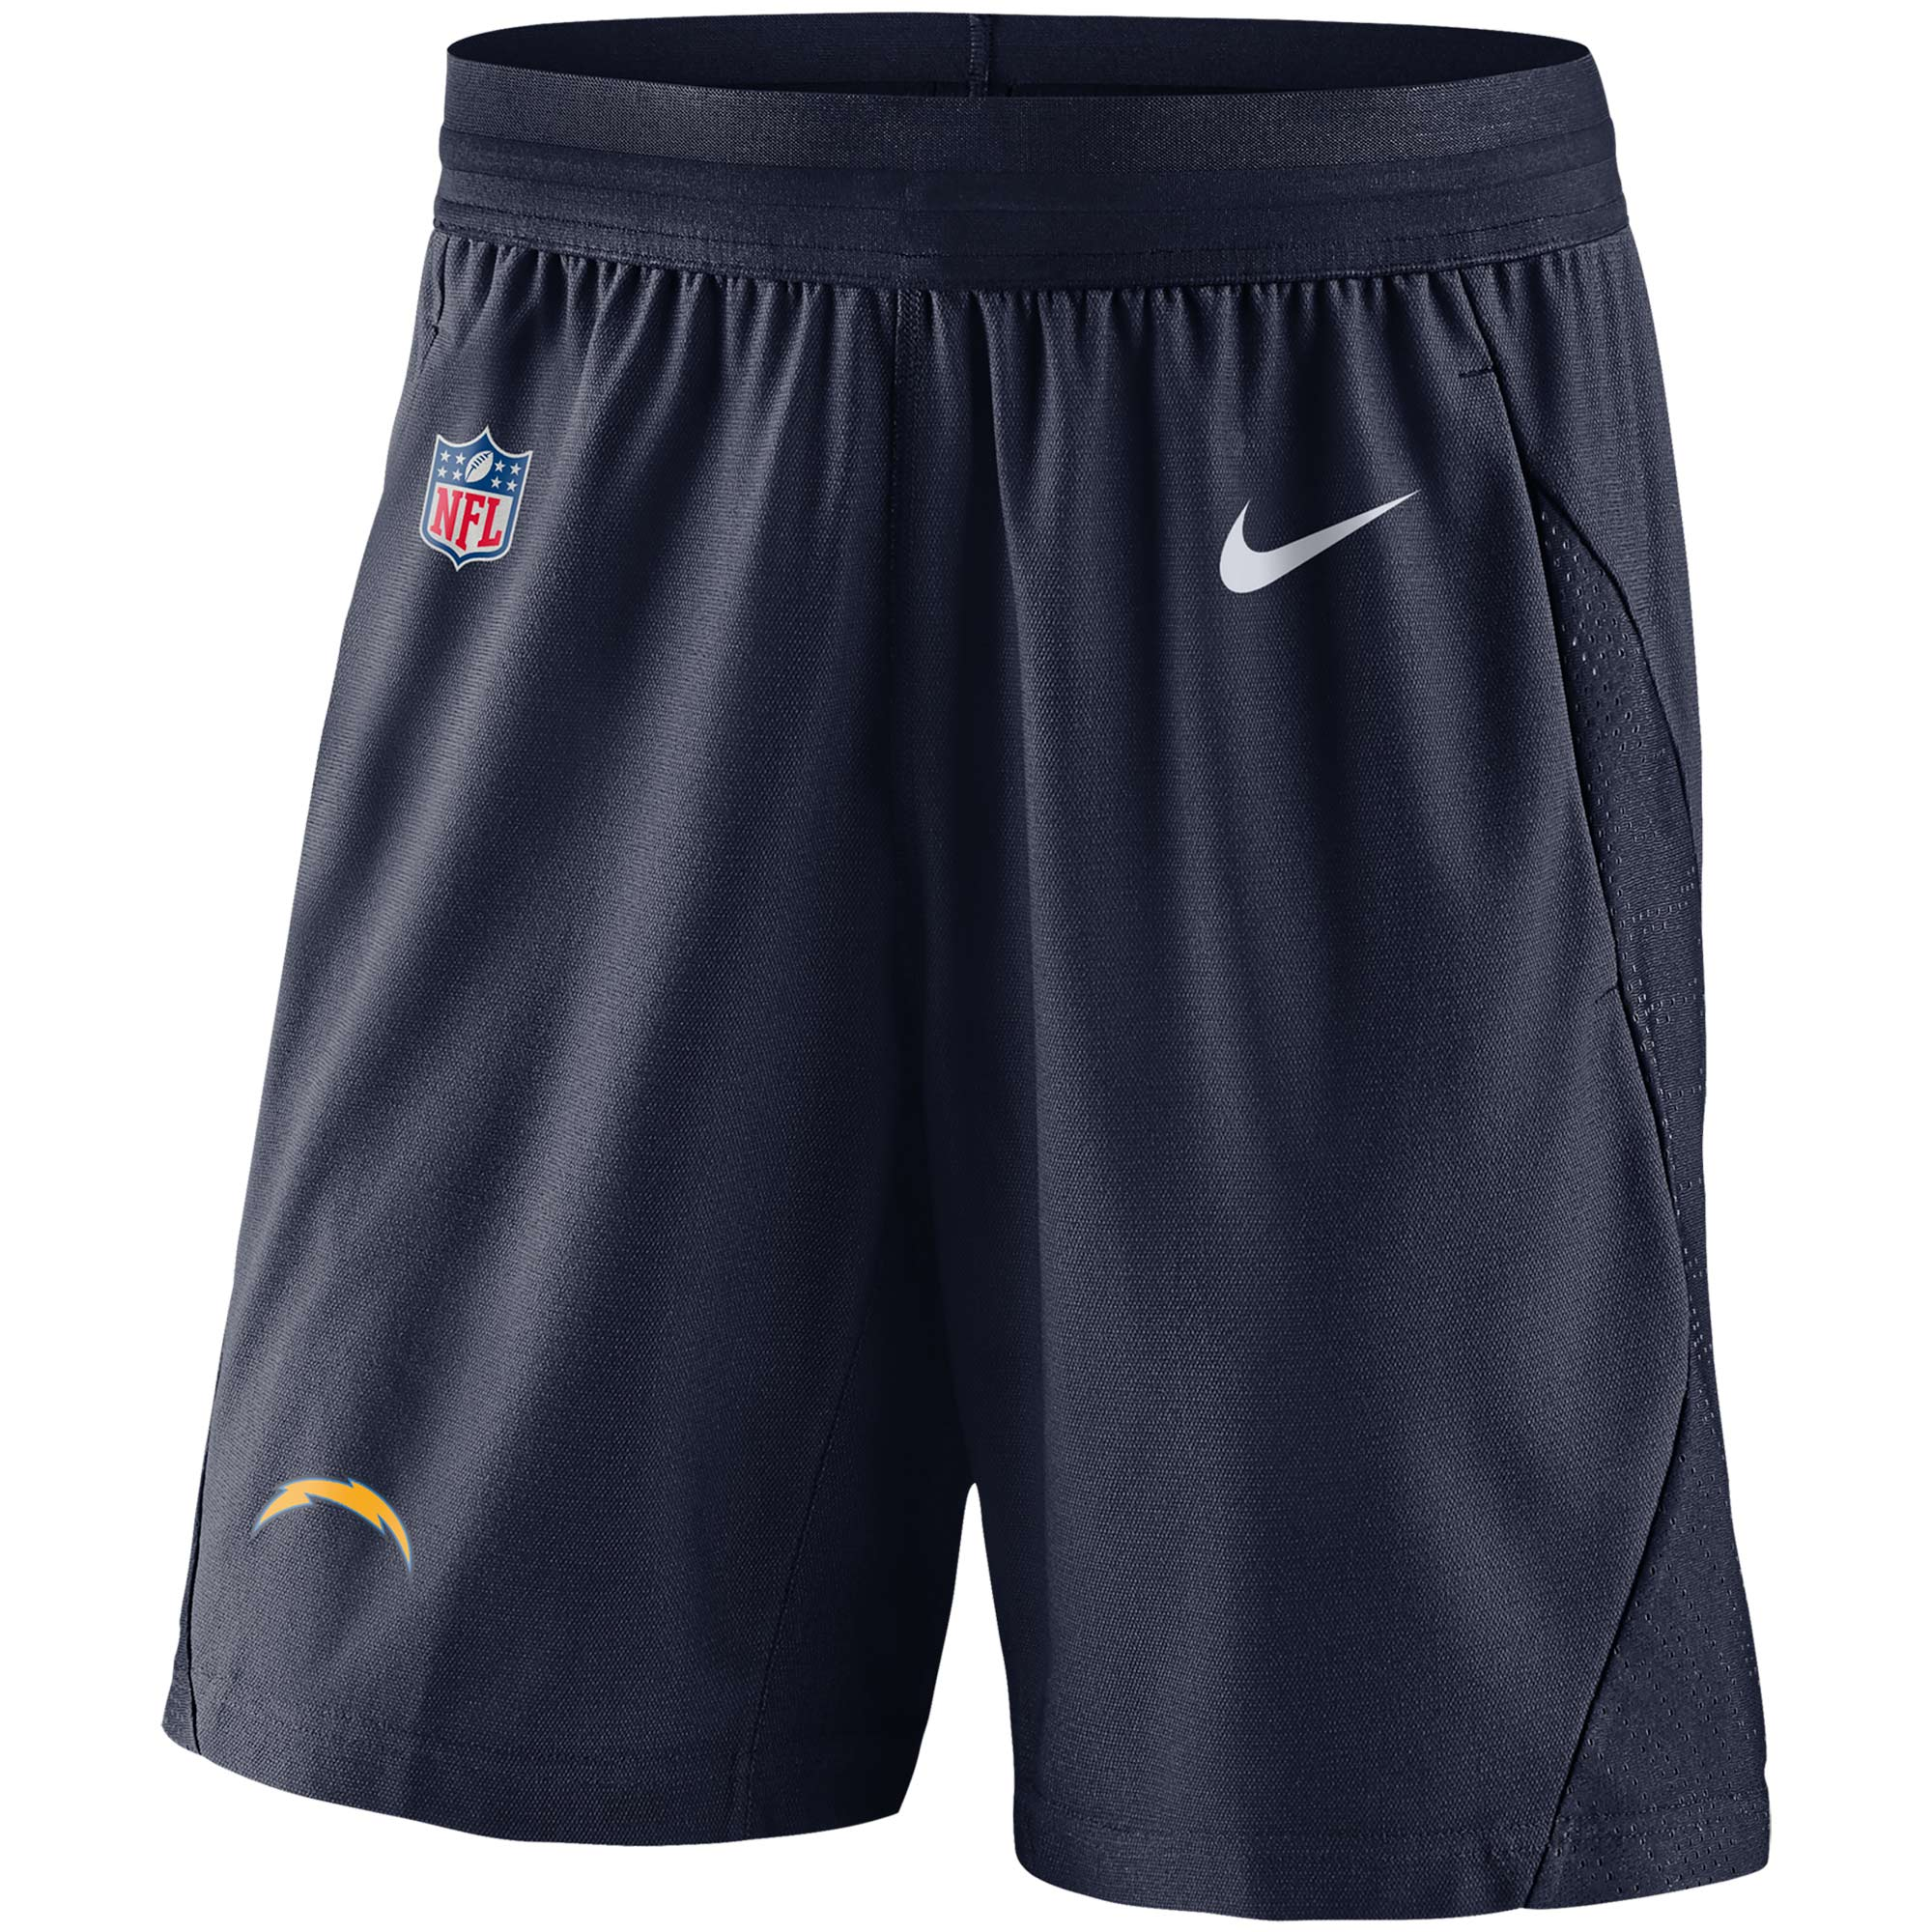 Los Angeles Chargers Nike Sideline Fly Performance Knit Shorts - Navy